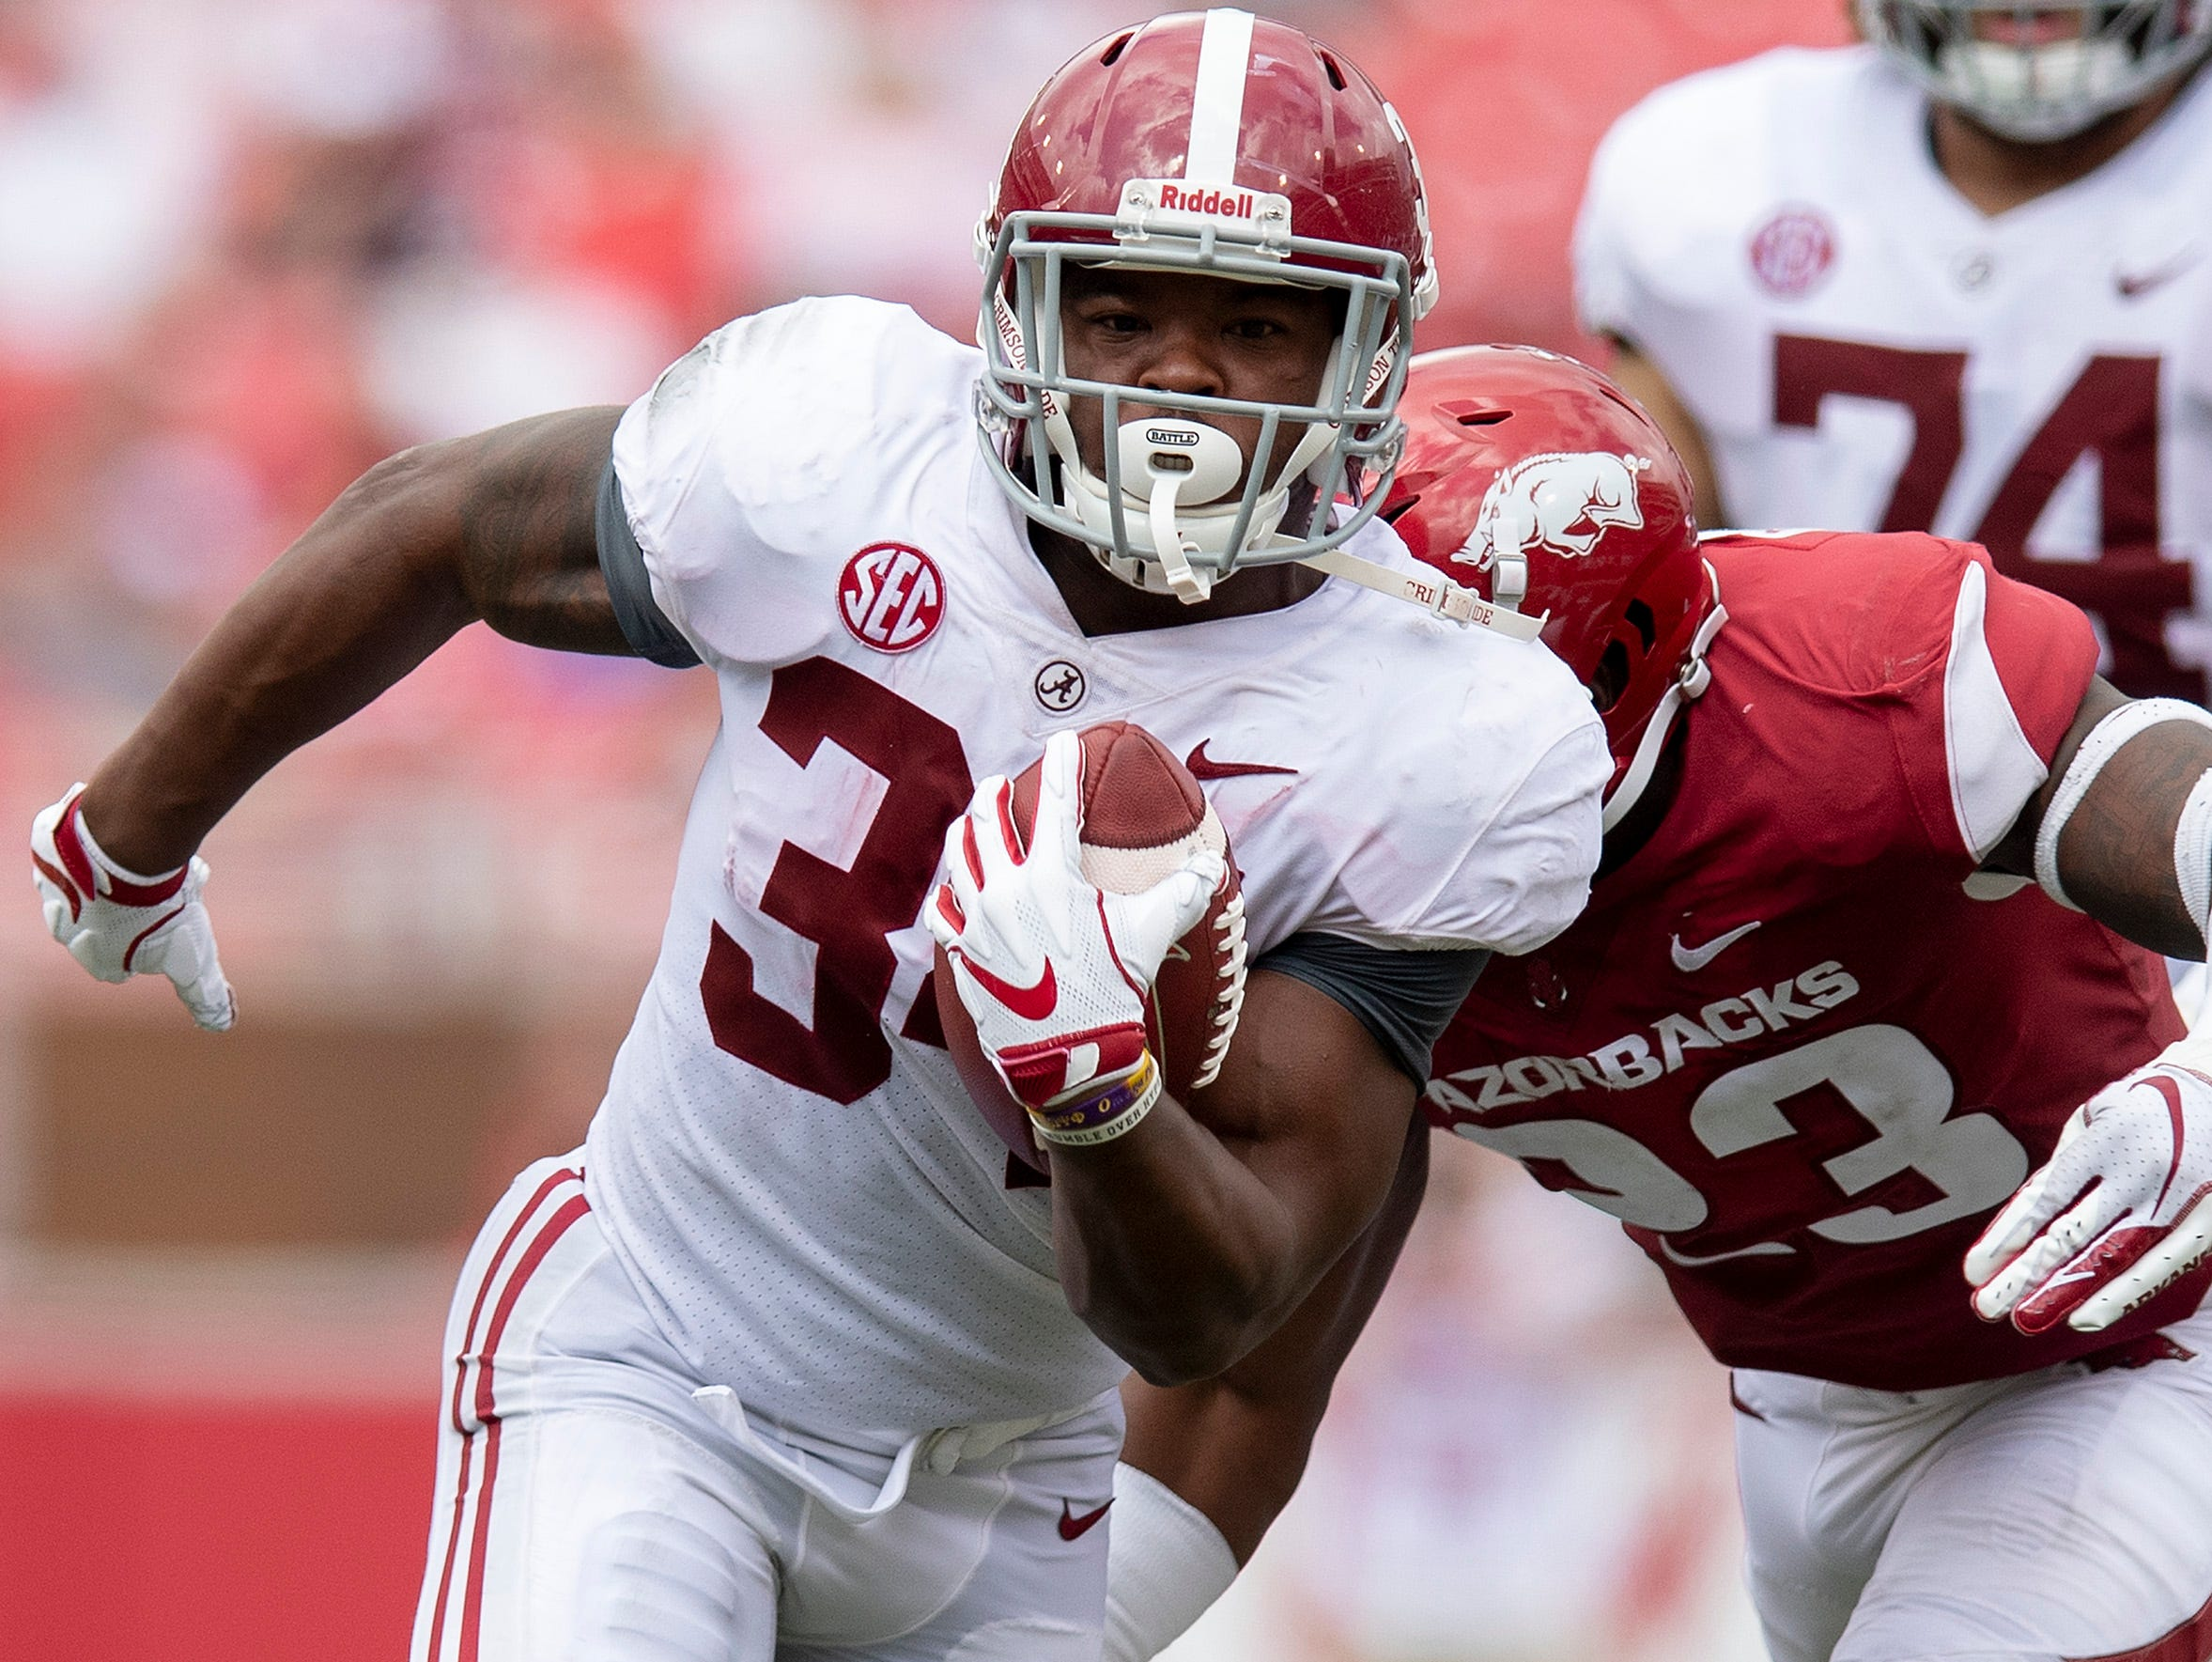 Alabama running back Damien Harris (34) carries the ball against Arkansas during second half action in Fayetteville, Ark., on Saturday October 6, 2018.